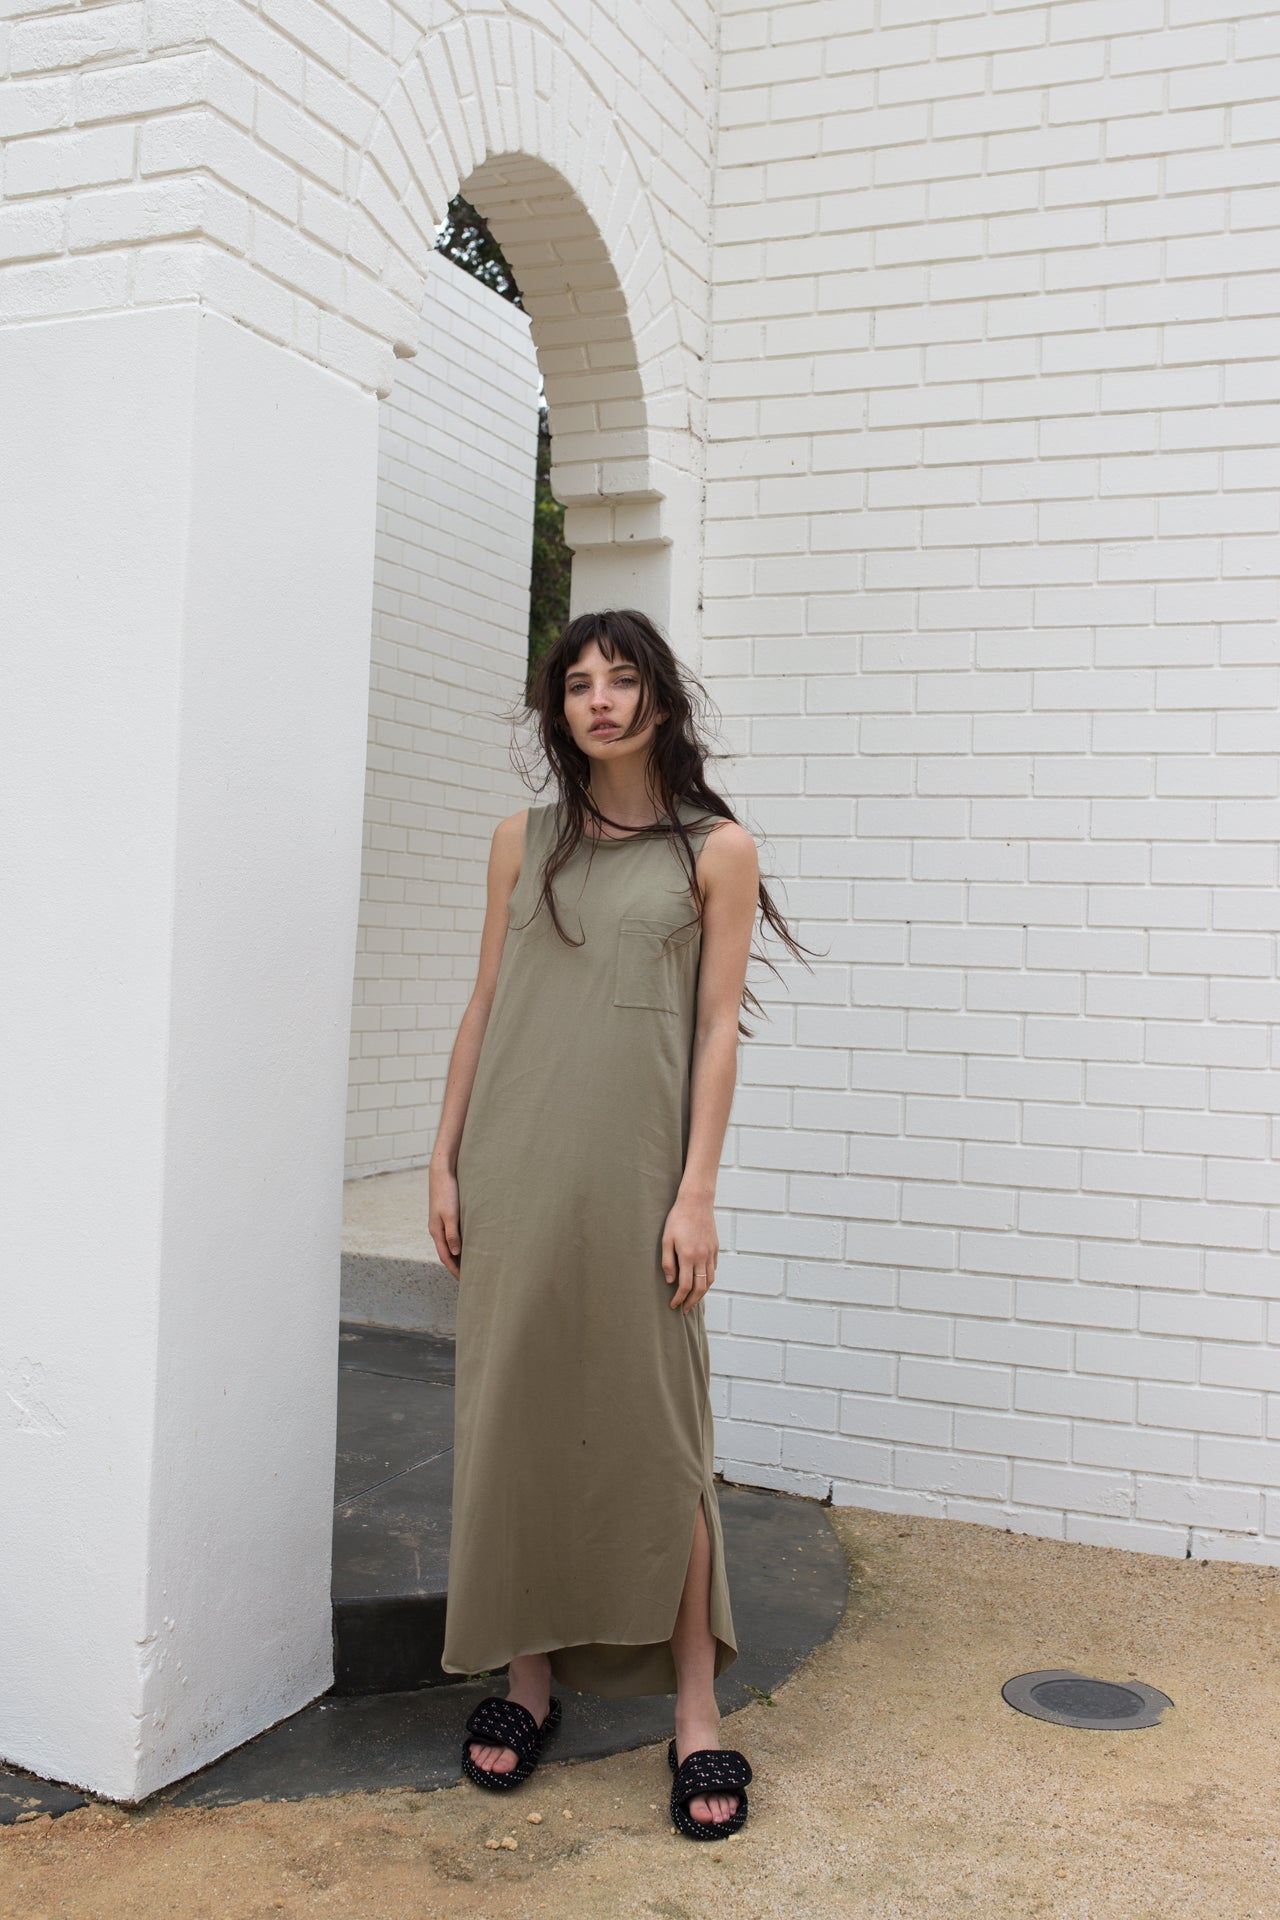 Rib Neck Maxi Tank Dress - Khaki / Black